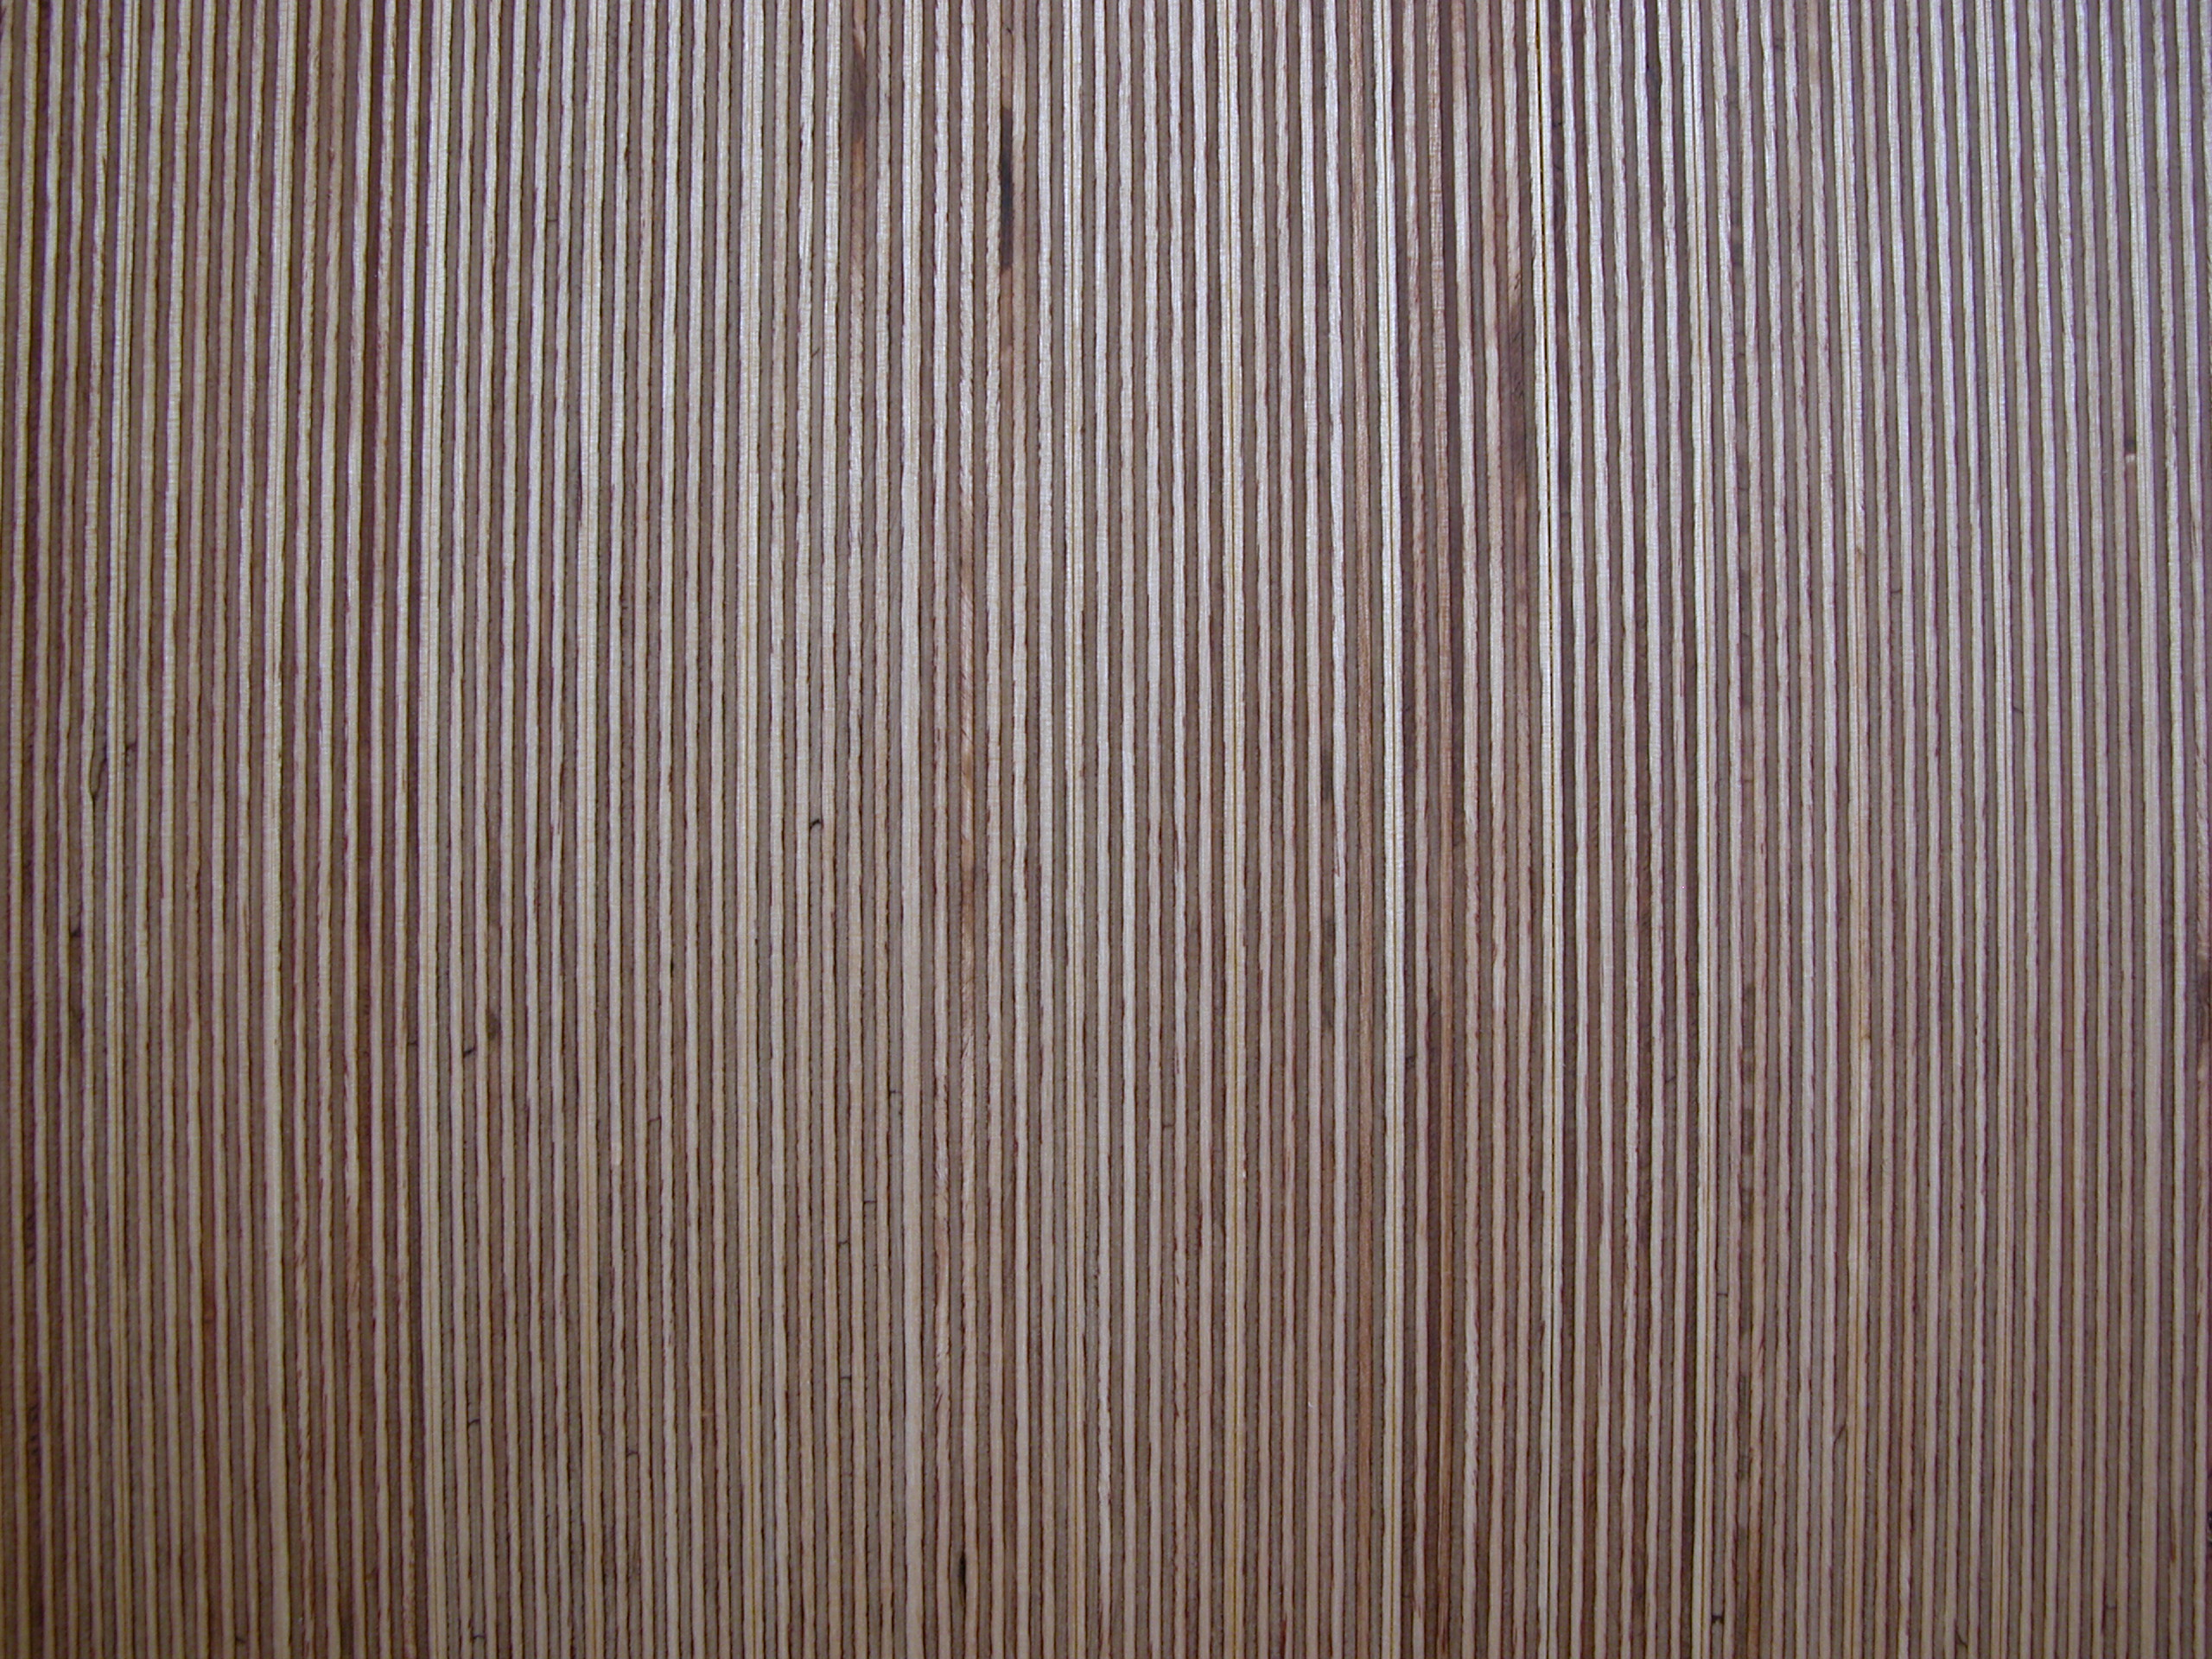 Image After Photos Wood Plank Panes Pane Plank Striped